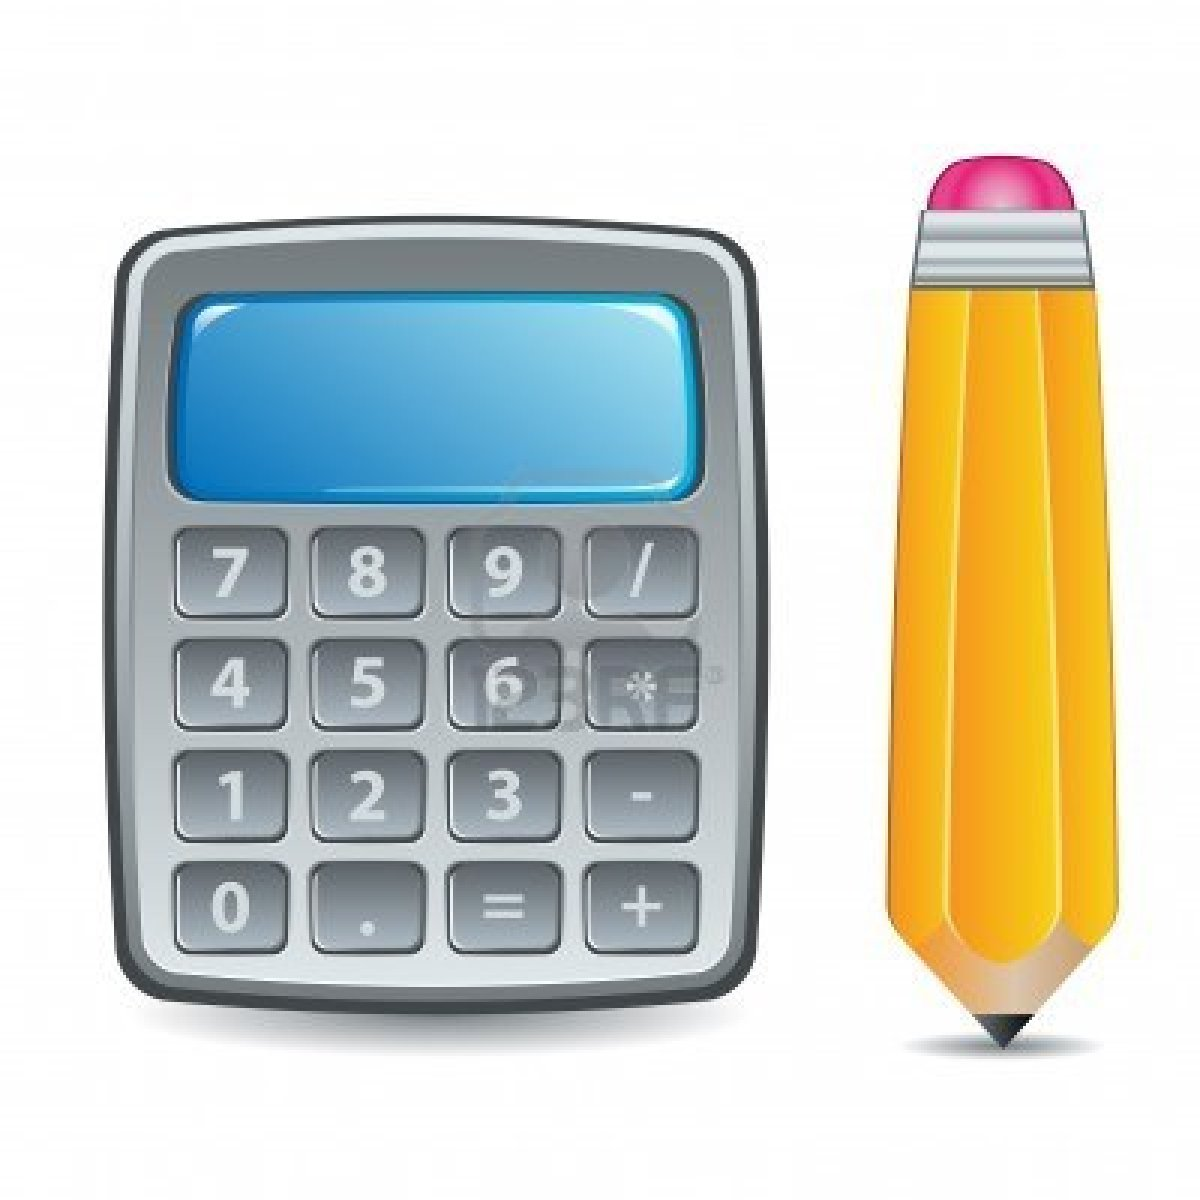 Calculator - 08 photo